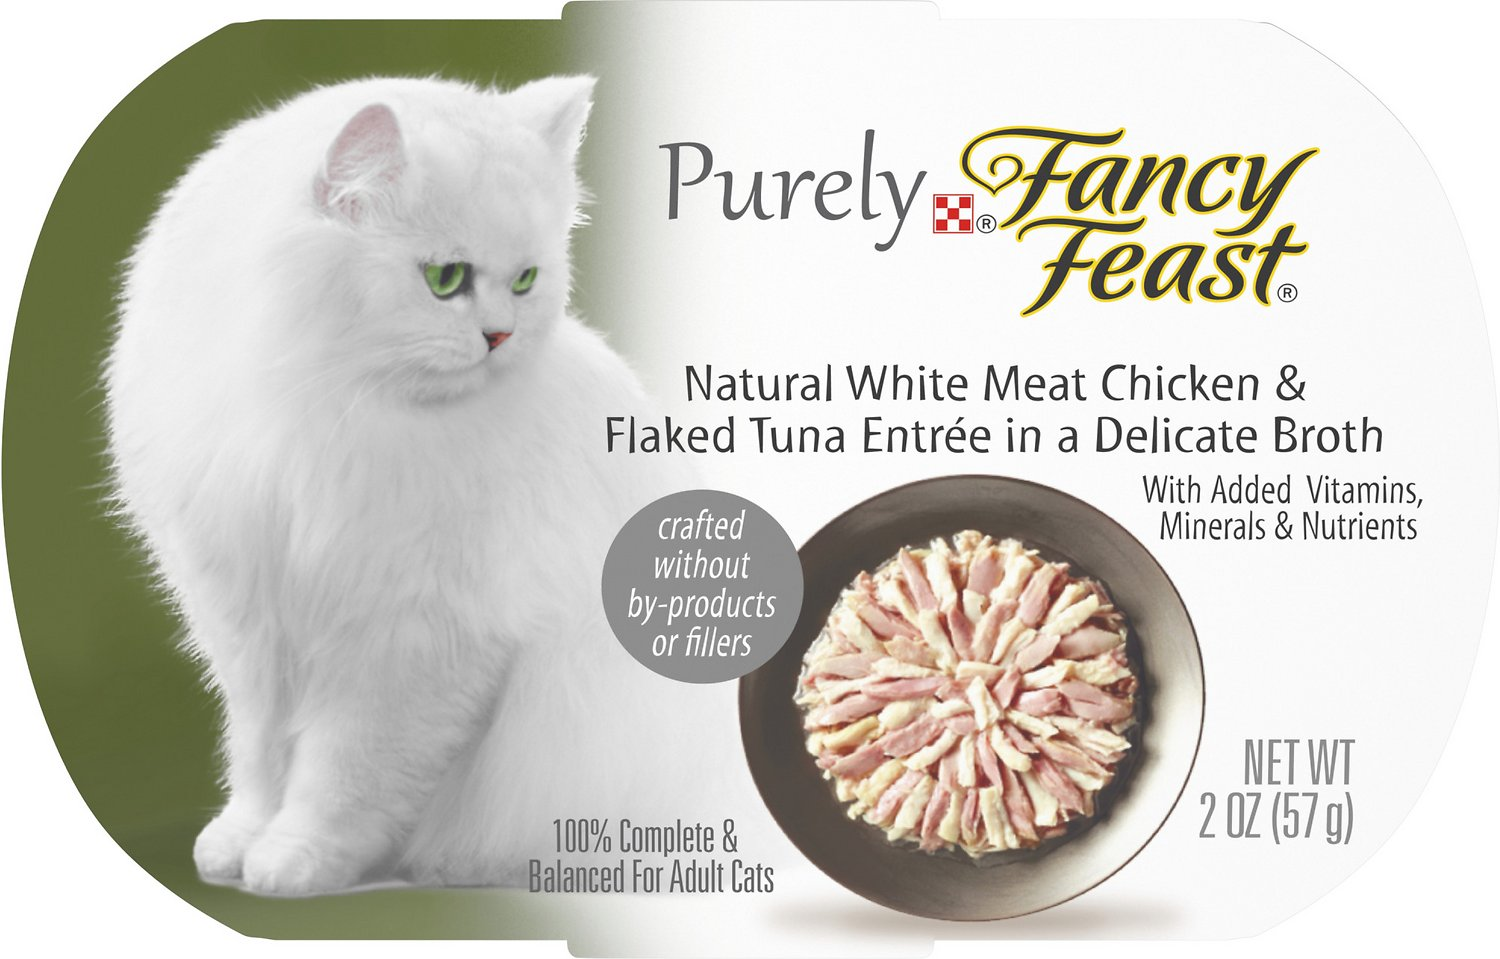 Purely Fancy Feast Cat Food Reviews